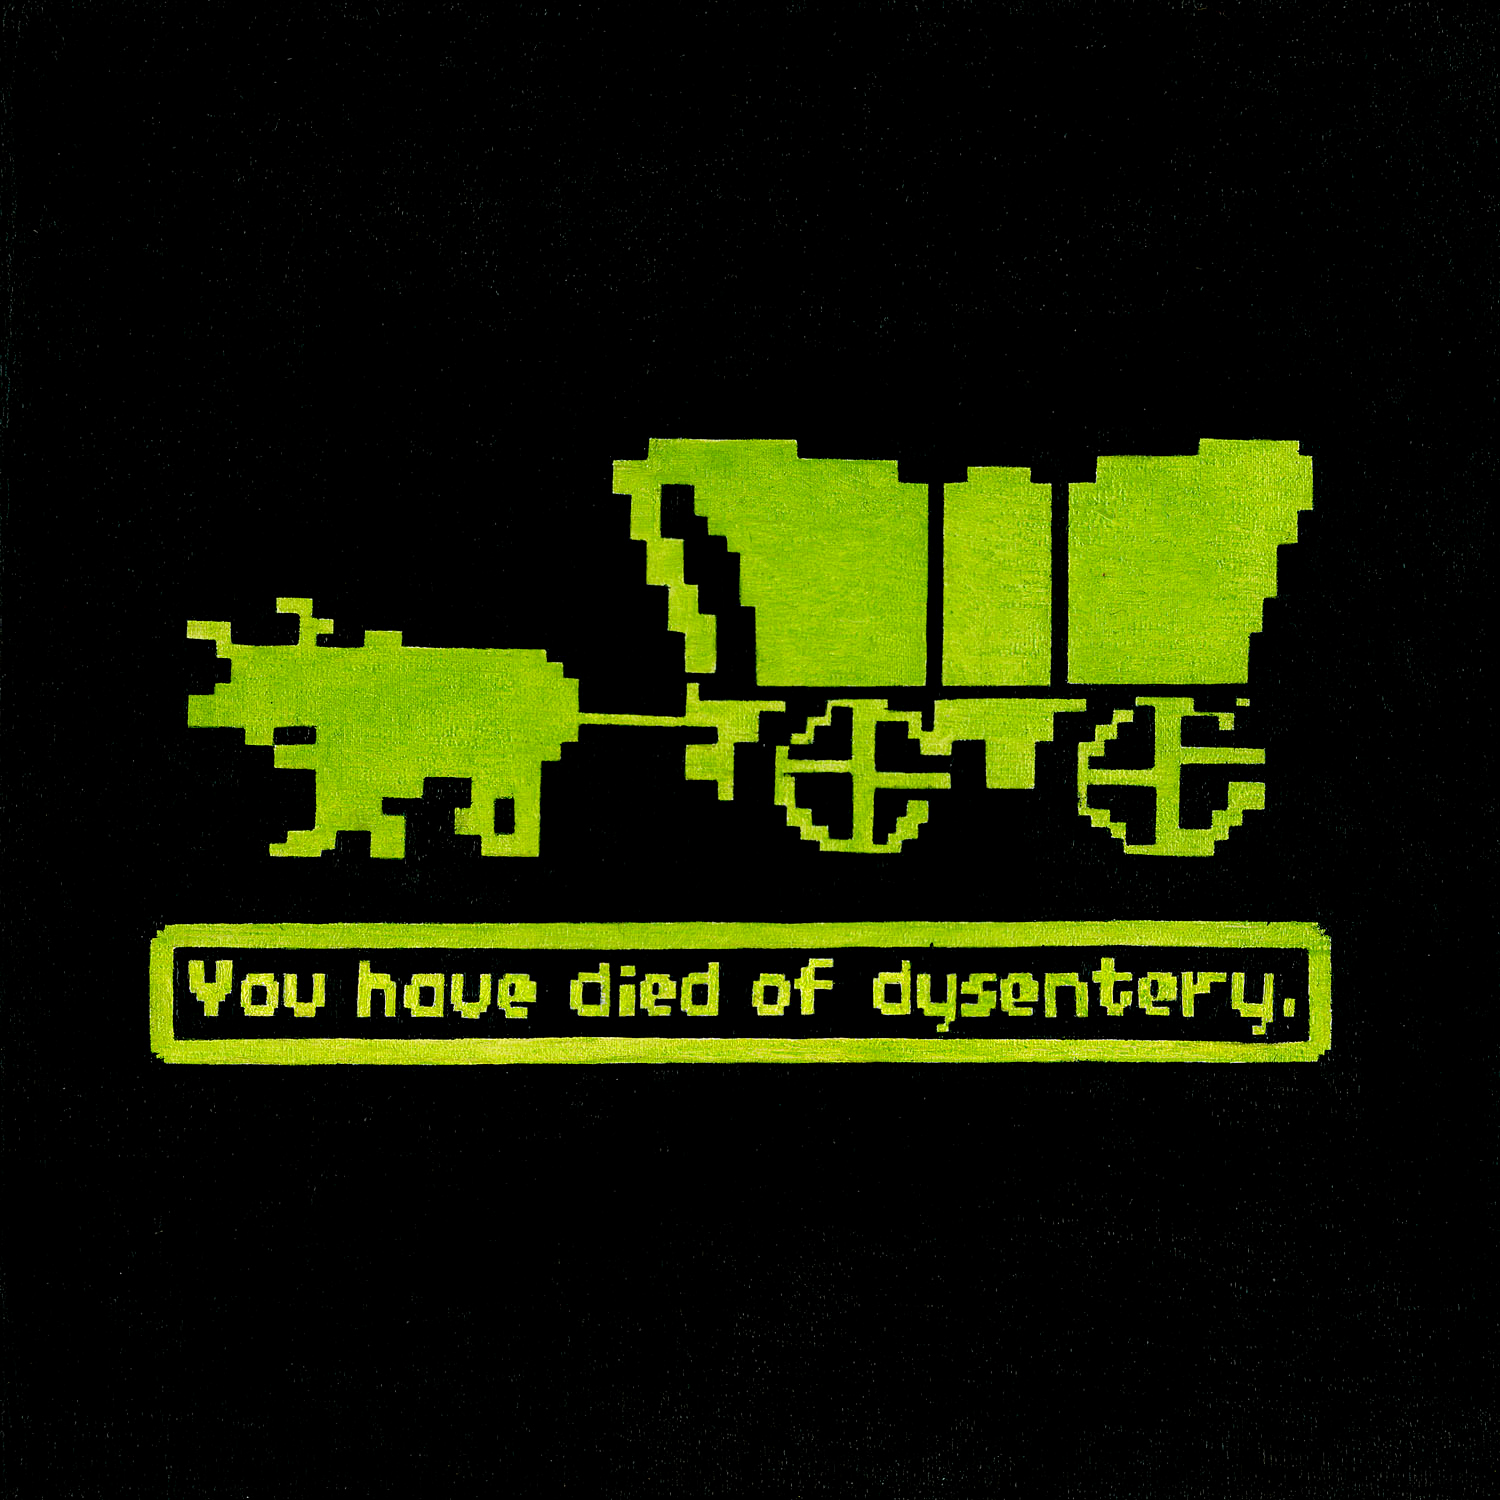 MILLENNIAL ICONS: Oregon Trail